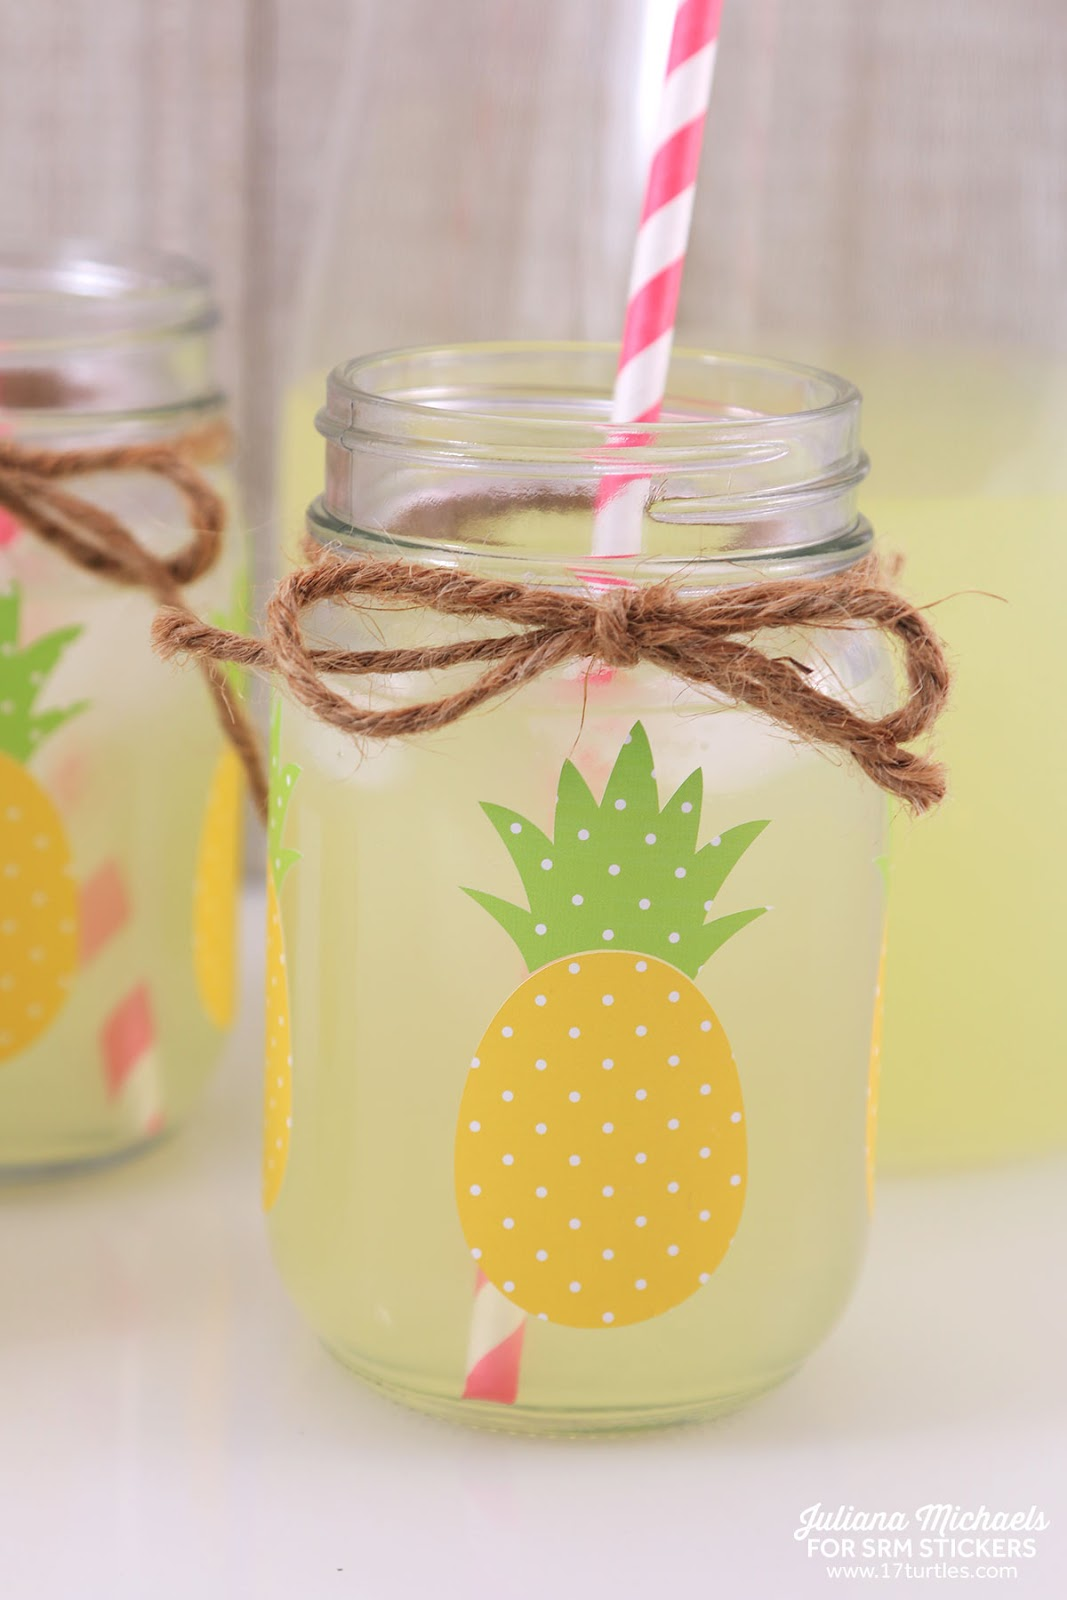 Srm Stickers Pineapple Mason Jars With Patterned Vinyl By